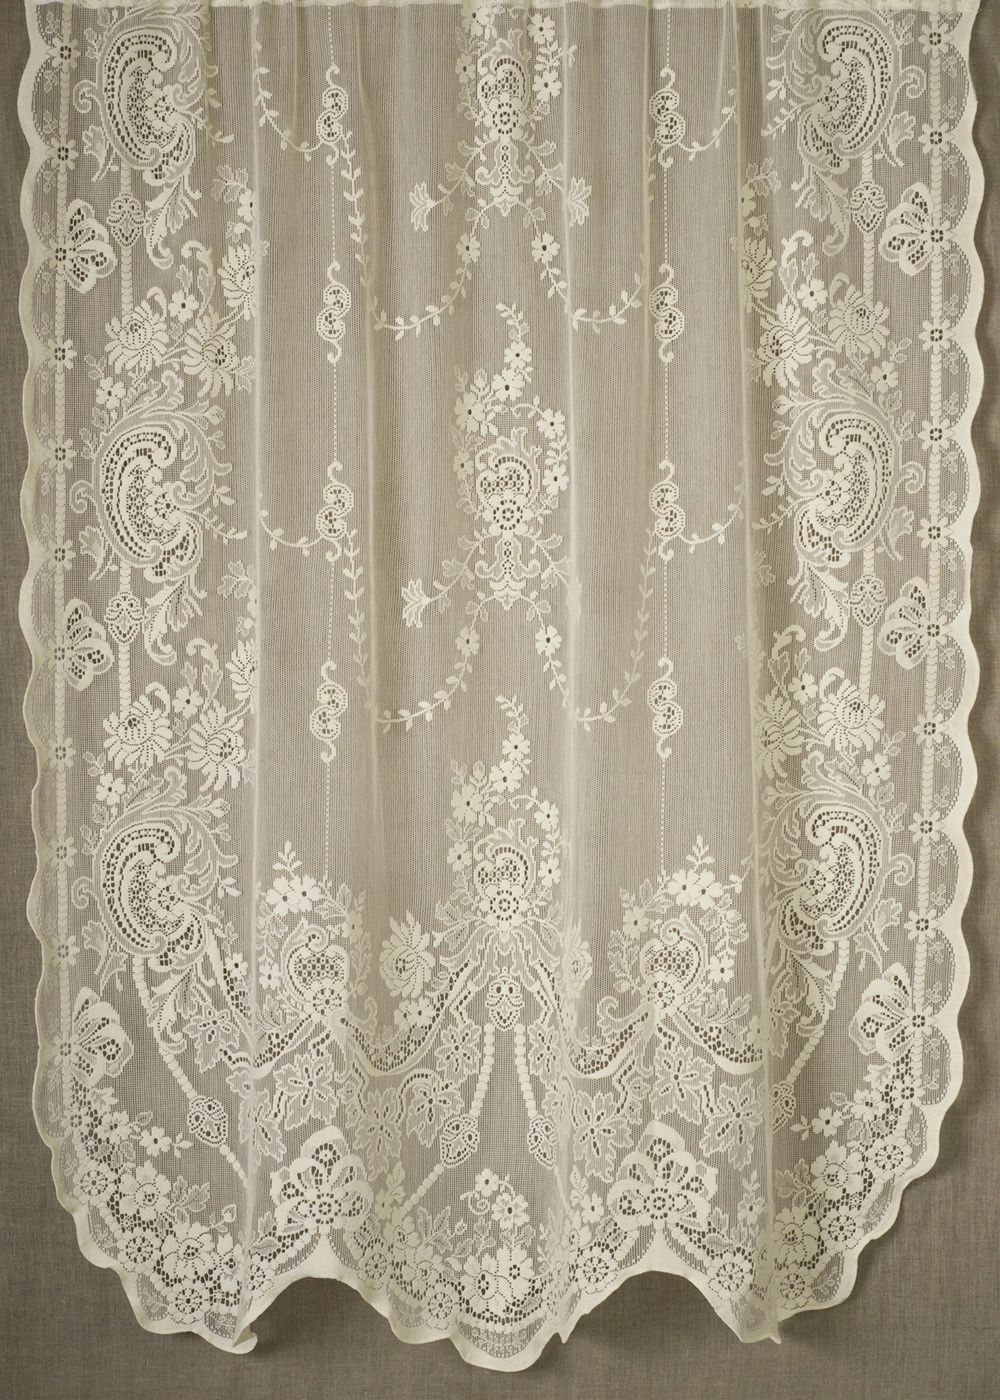 Rachel Nottingham Lace Curtain Direct From London Lace: London Lace We  Specializing In The Finest